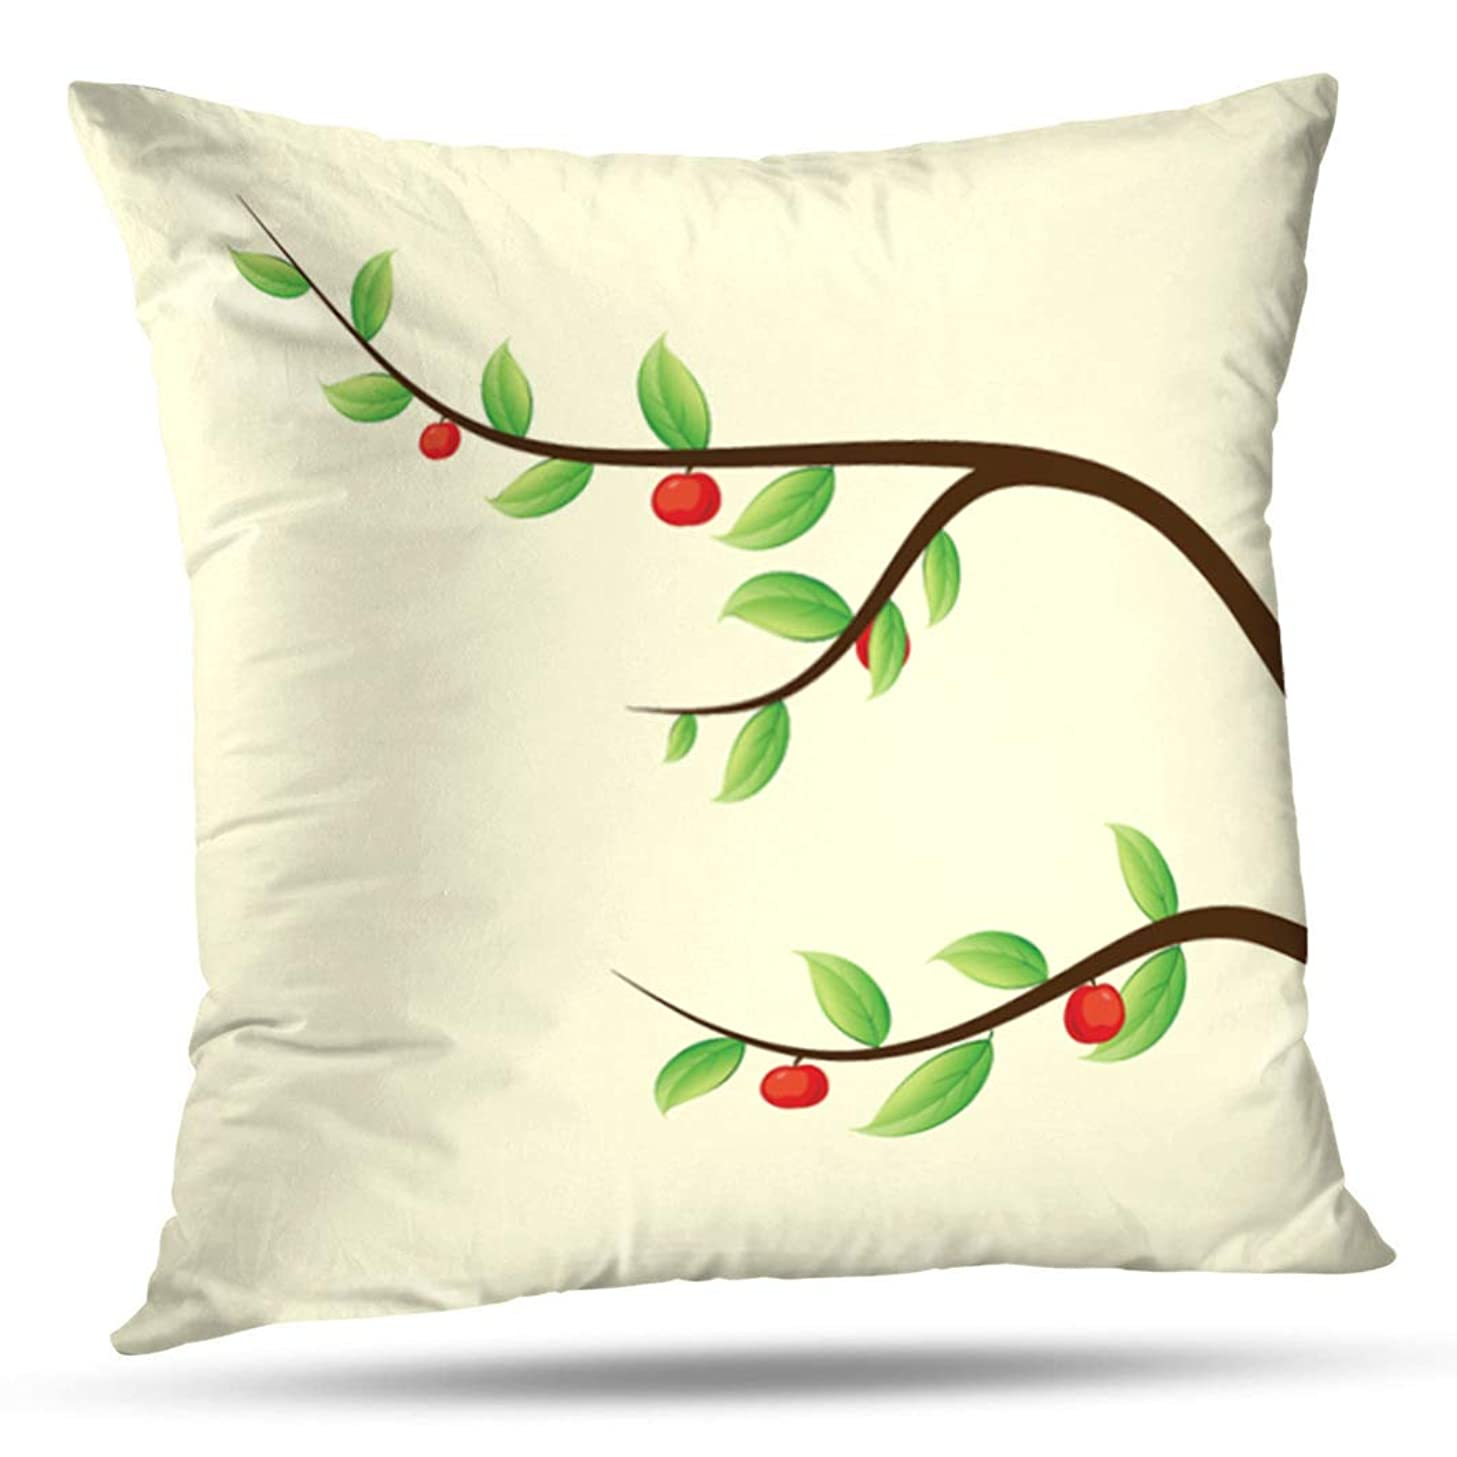 Alricc Apple Tree Branch Orange Fruit Autumn Brown Decoration Decorative Throw Pillows Cushion Cover for Bedroom Sofa Living Room 16X16 Inches